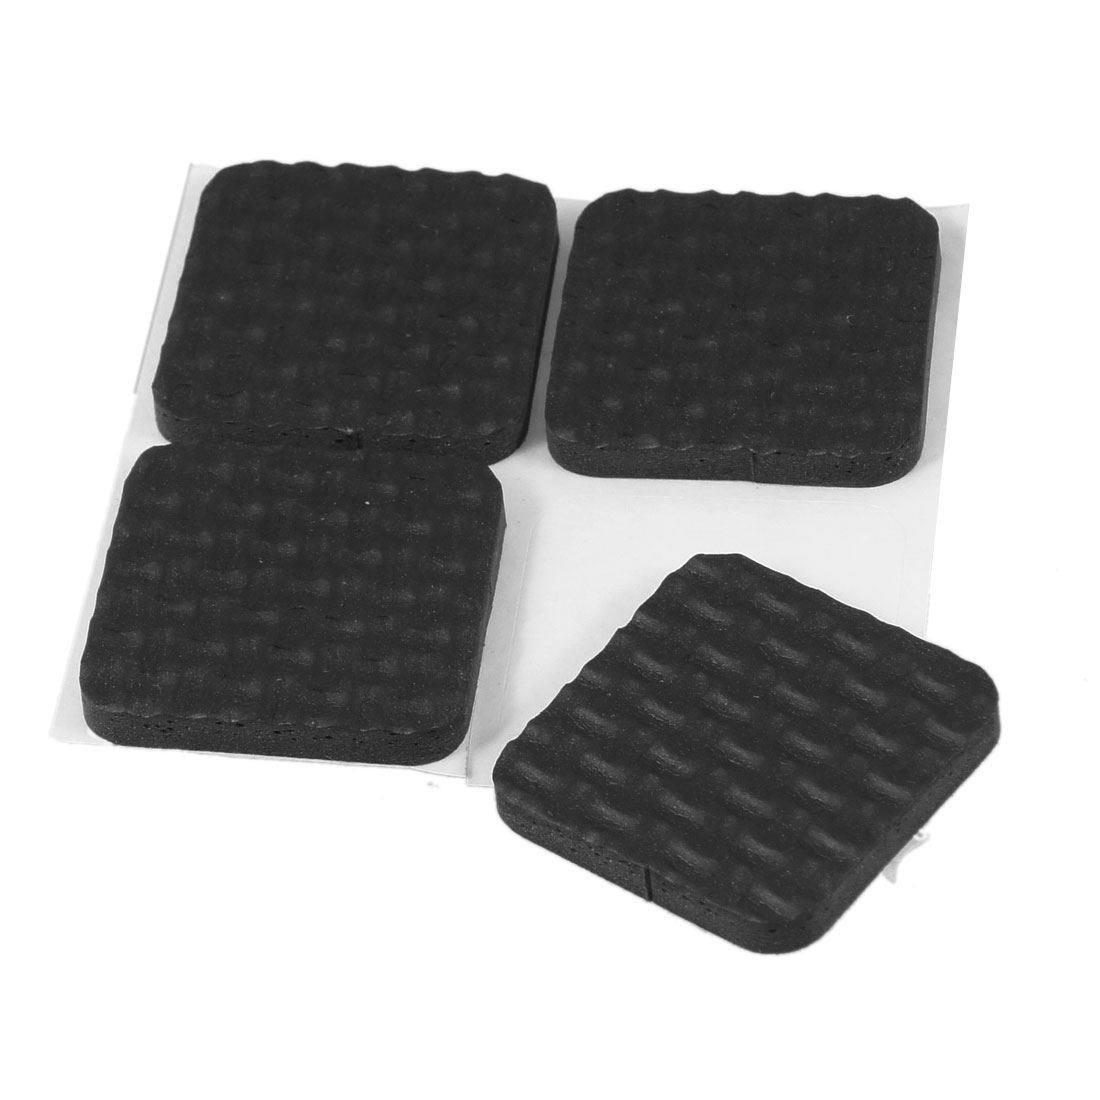 4 Pcs Black Foam Self Adhesive Table Chair Foot Nonslip Square Pad